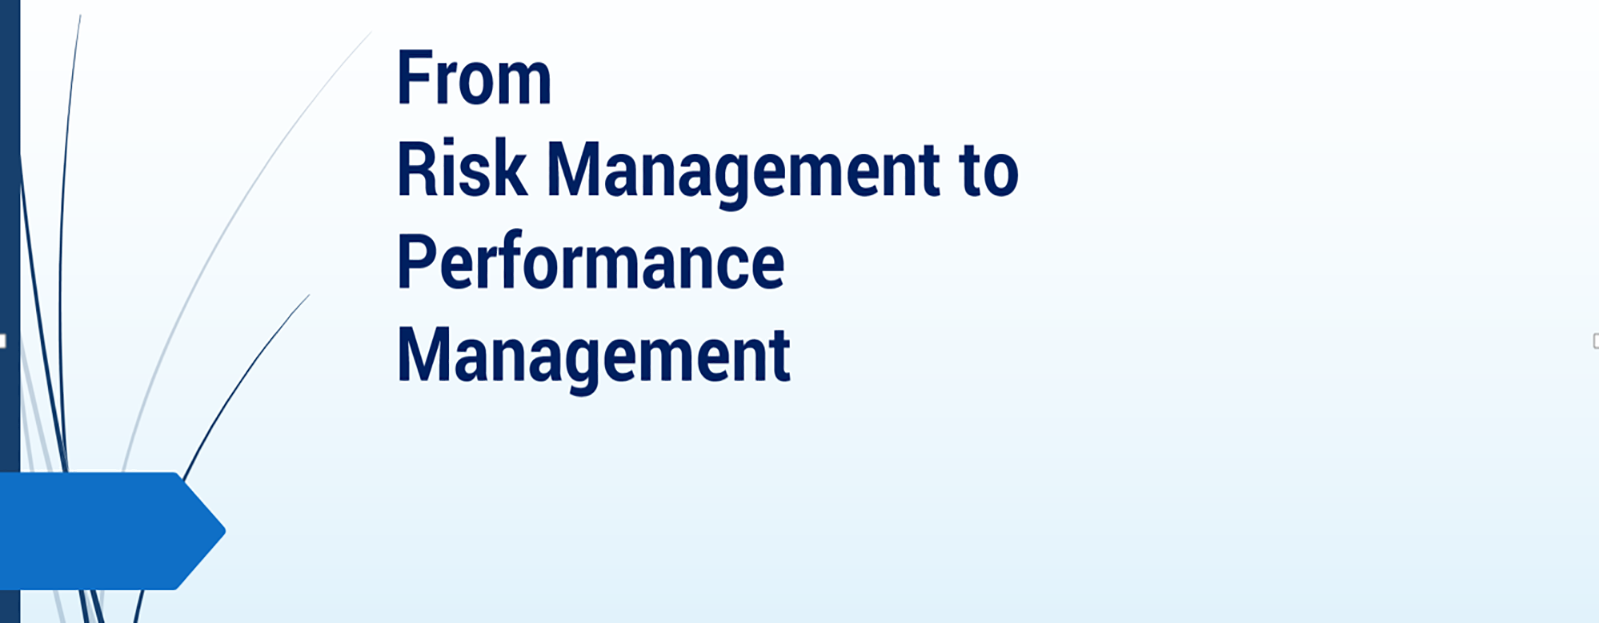 eBook: From Risk Management to Performance Management